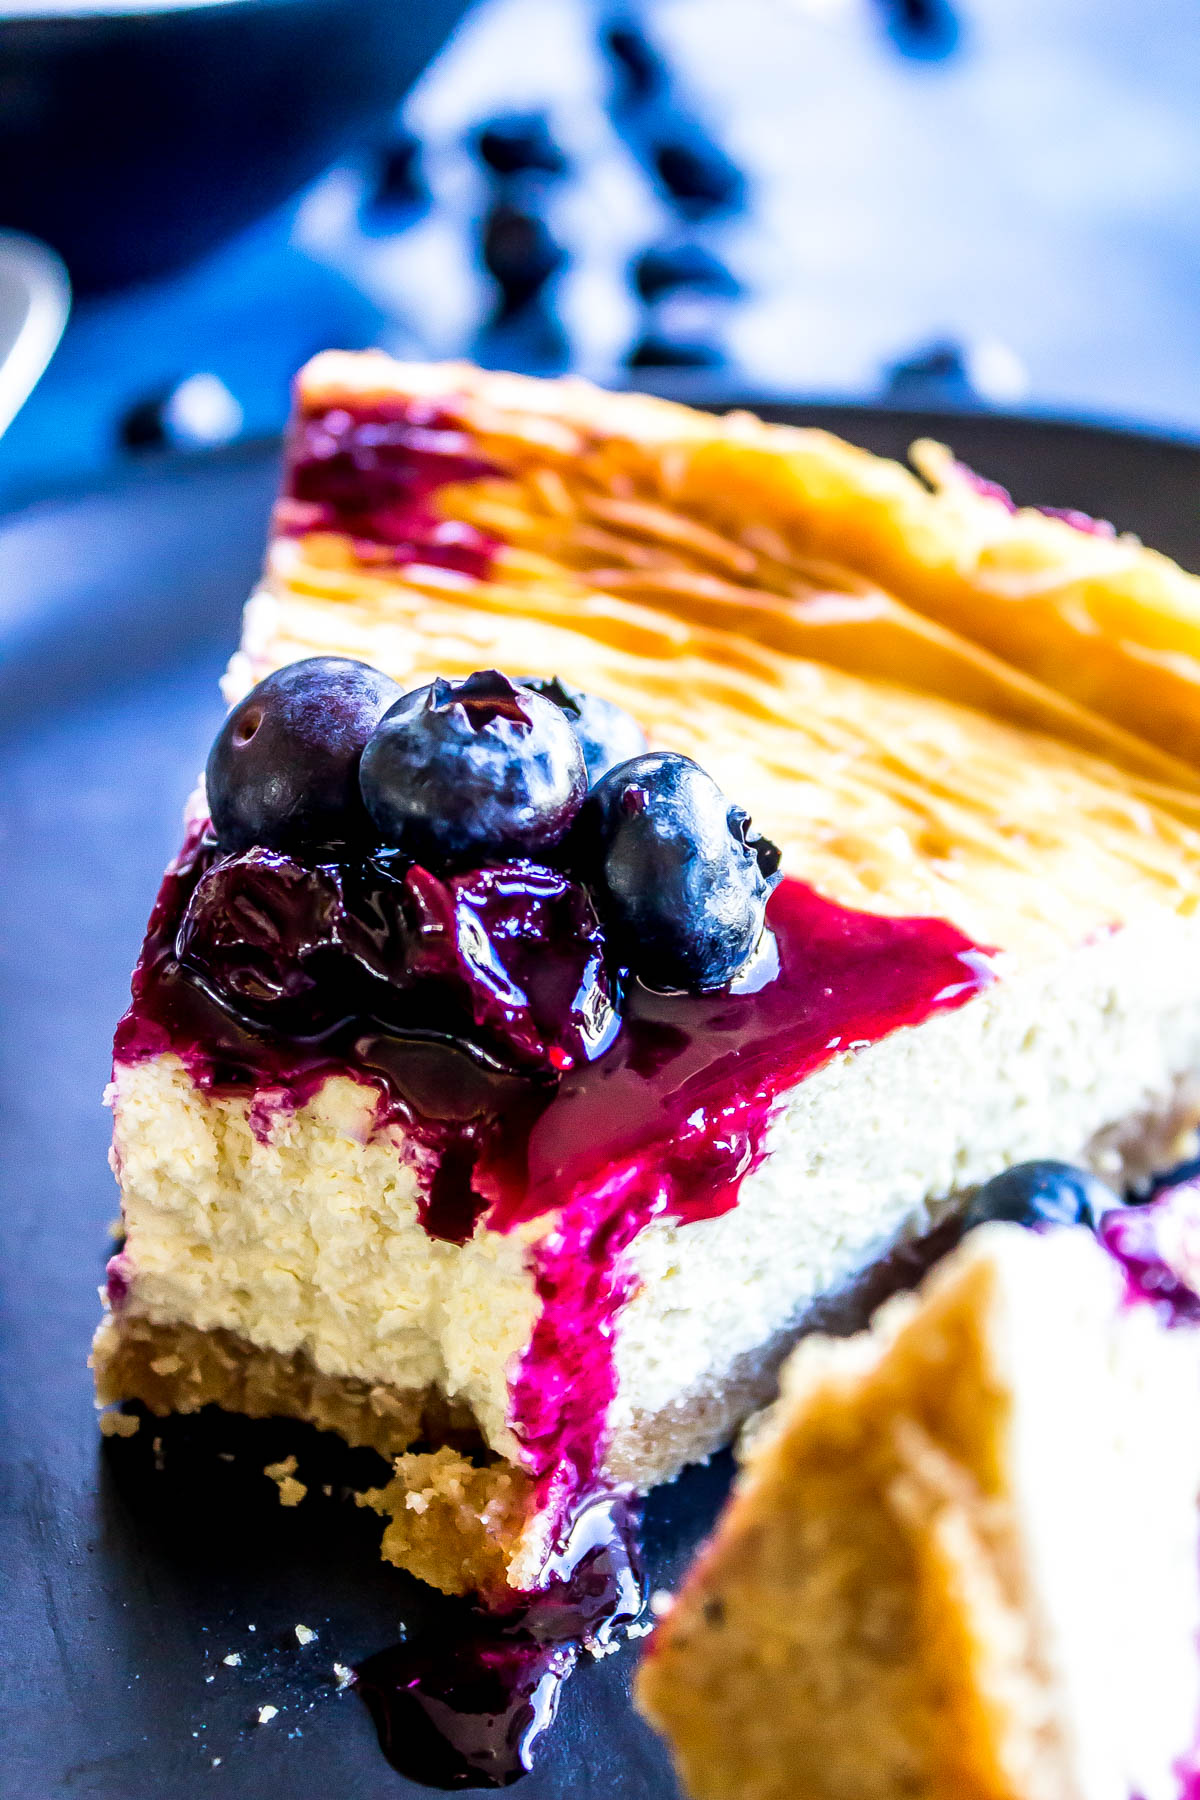 This Easy Keto Cheesecake is creamy, sweet, and totally delicious. Made in a cast iron skillet it's perfectly cooked - top it with your favorite toppings (we used fresh blueberries simmered with just a bit of Swerve) #keto #ketorecipe #lchf #lowcarb #lowcarbrecipe #easyrecipe #ketodessert #glutenfree